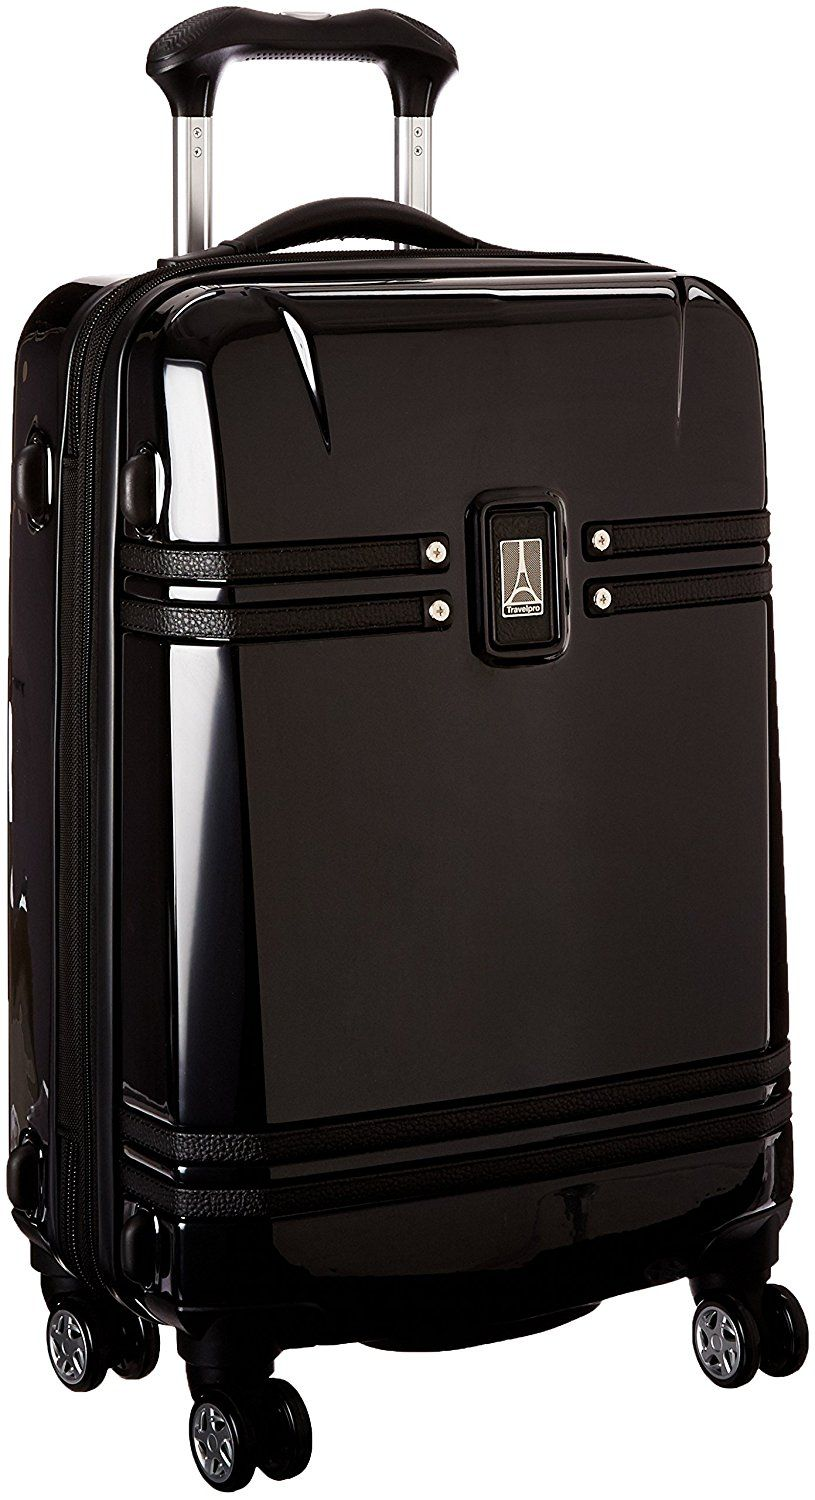 Travelpro Crew 10 21 Inch Hardside Spinner -- For more information, visit now : Travel luggage